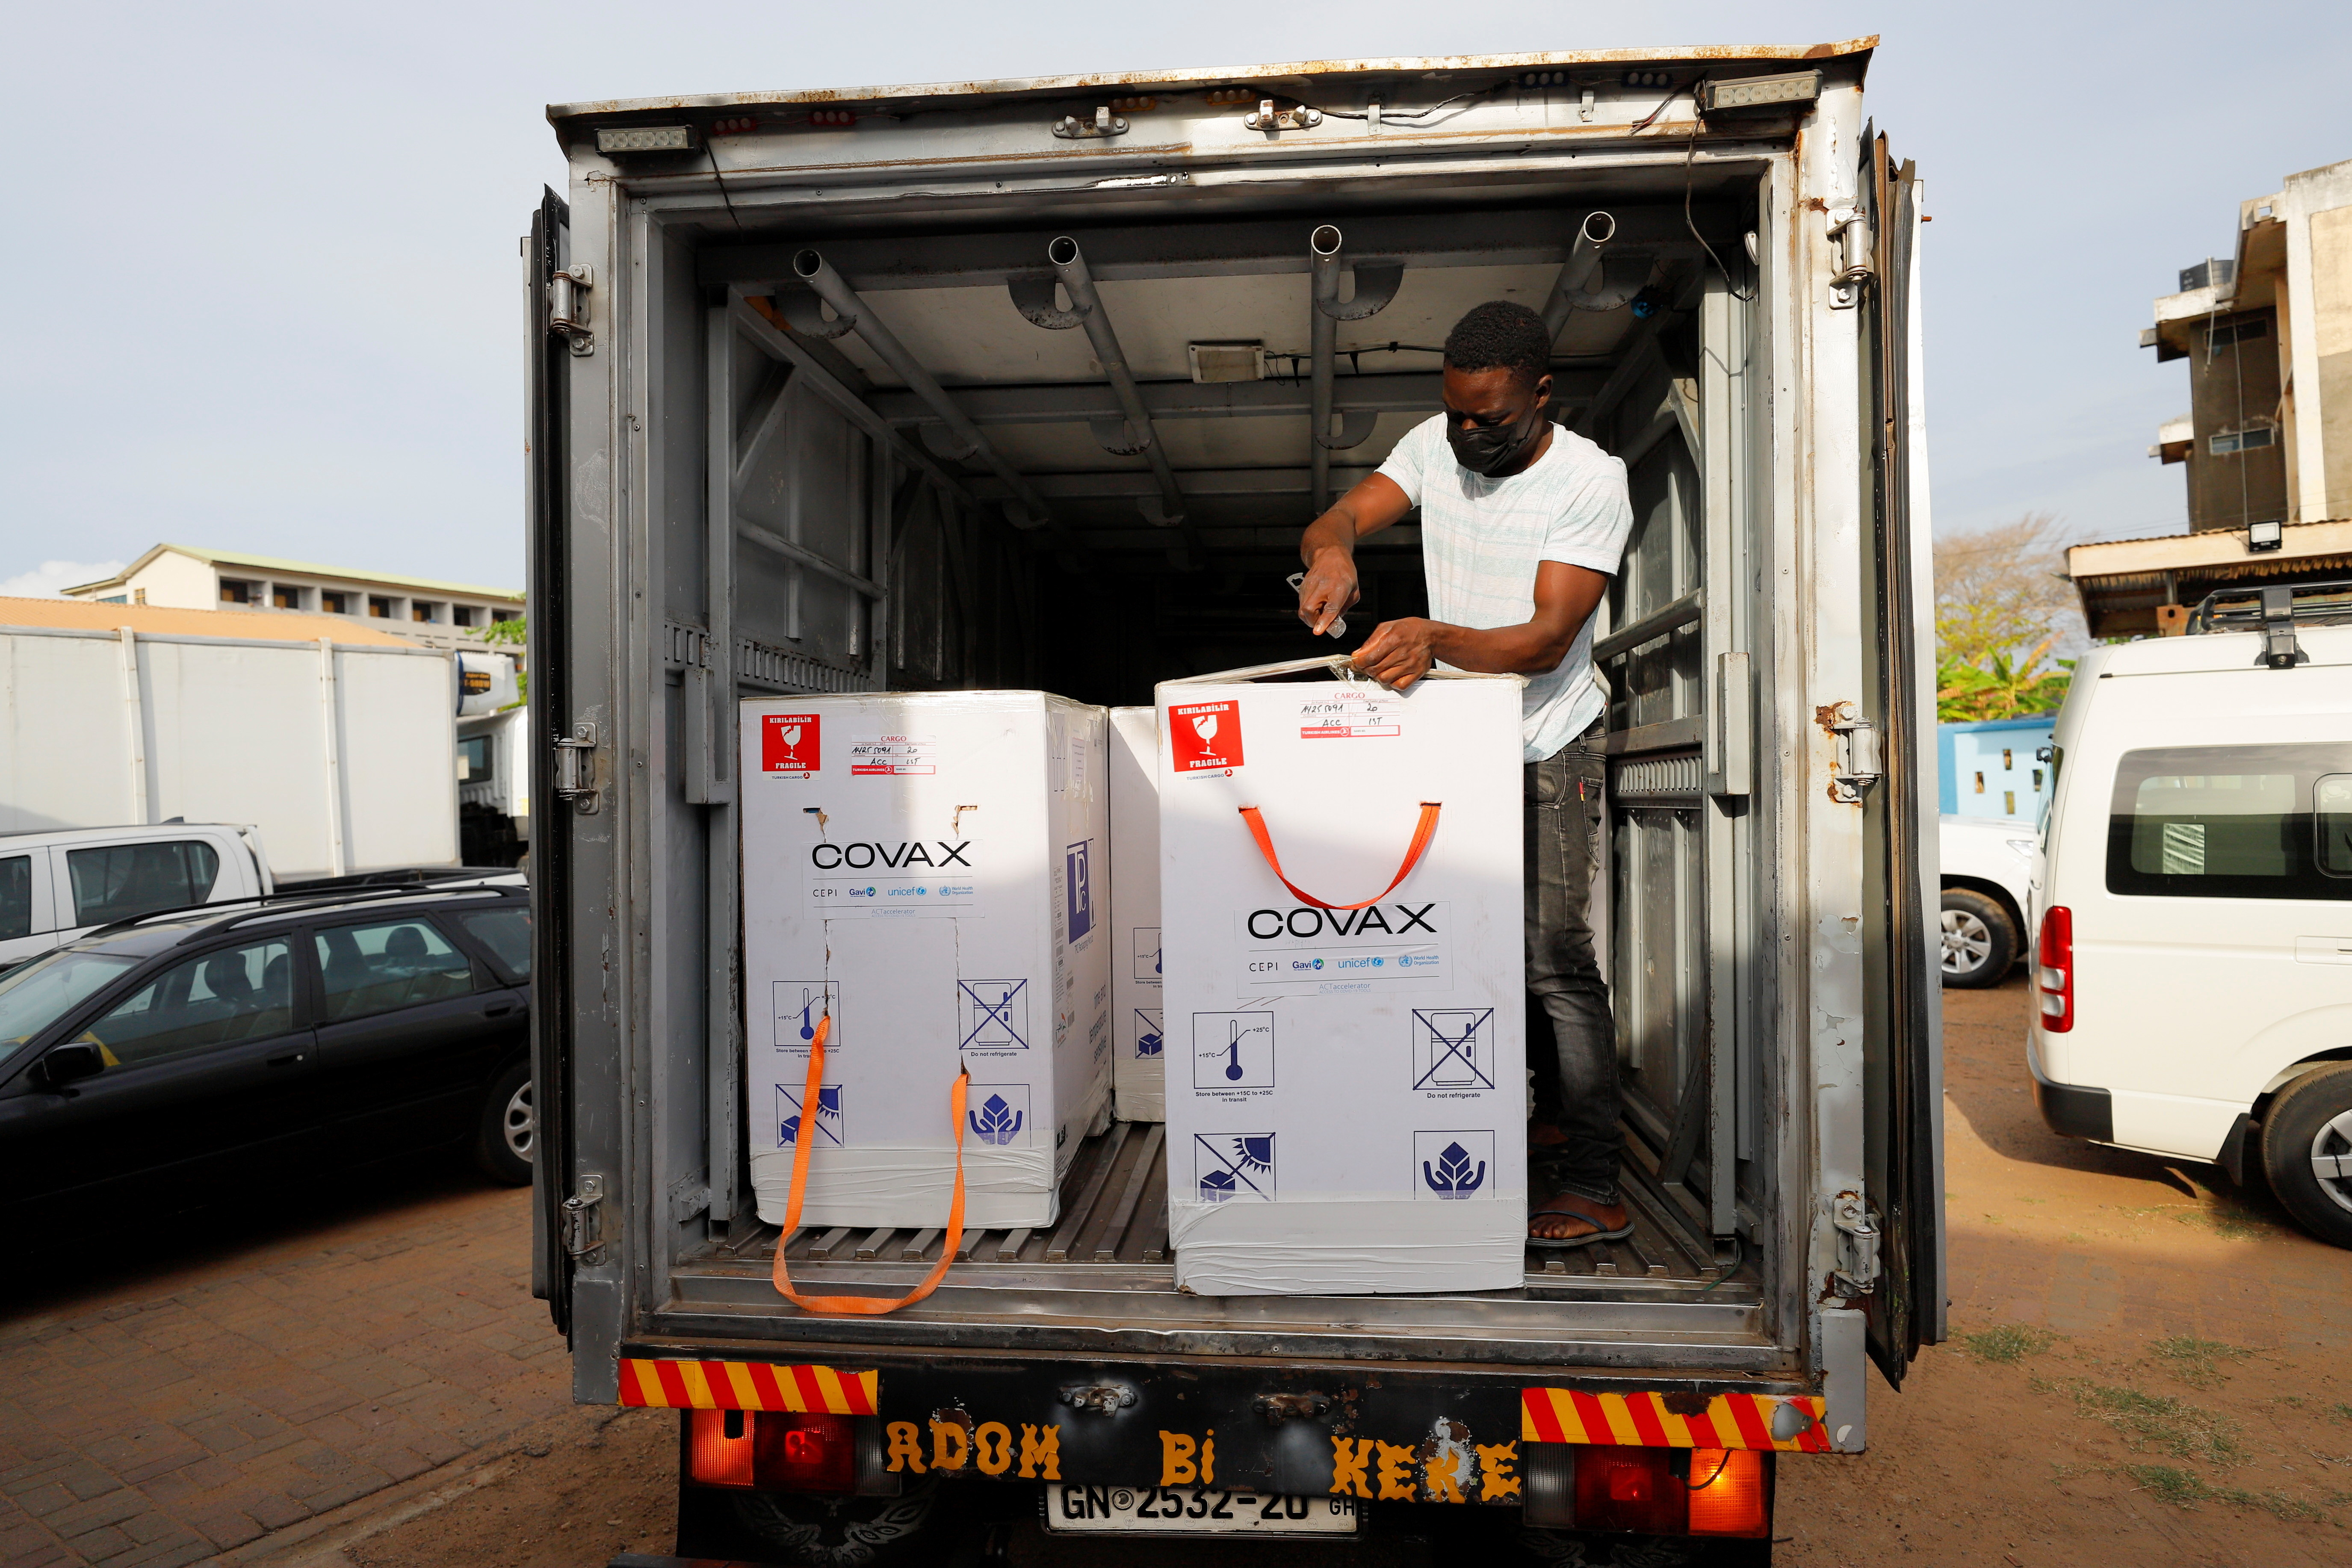 Boxes of Oxford/AstraZeneca coronavirus disease (COVID-19) vaccines, redeployed from the Democratic Republic of Congo, are seen loaded onto a refrigerated delivery truck in Accra, Ghana, May 7, 2021. REUTERS/Francis Kokoroko - RC2VAN96JL50